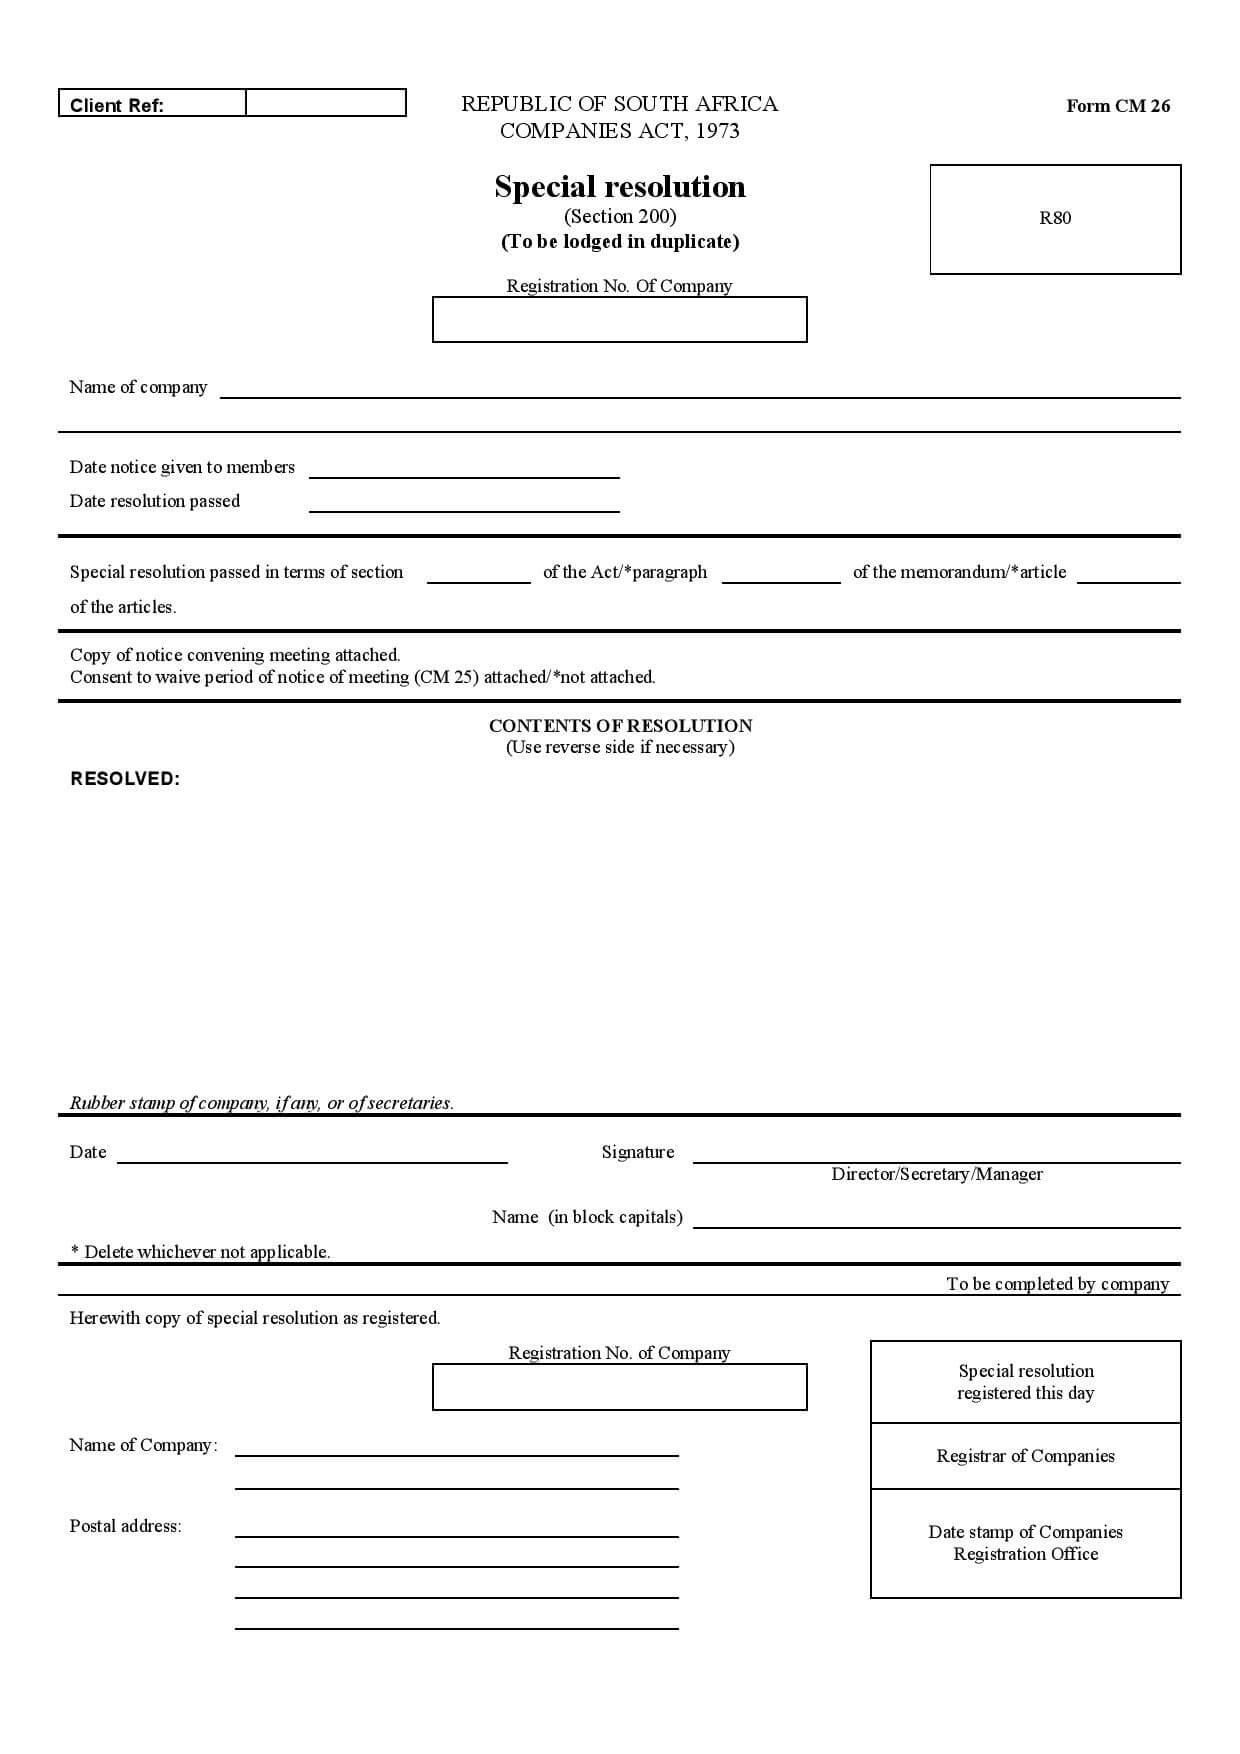 Dorable corporate resolution form model simple resume for Company resolution template